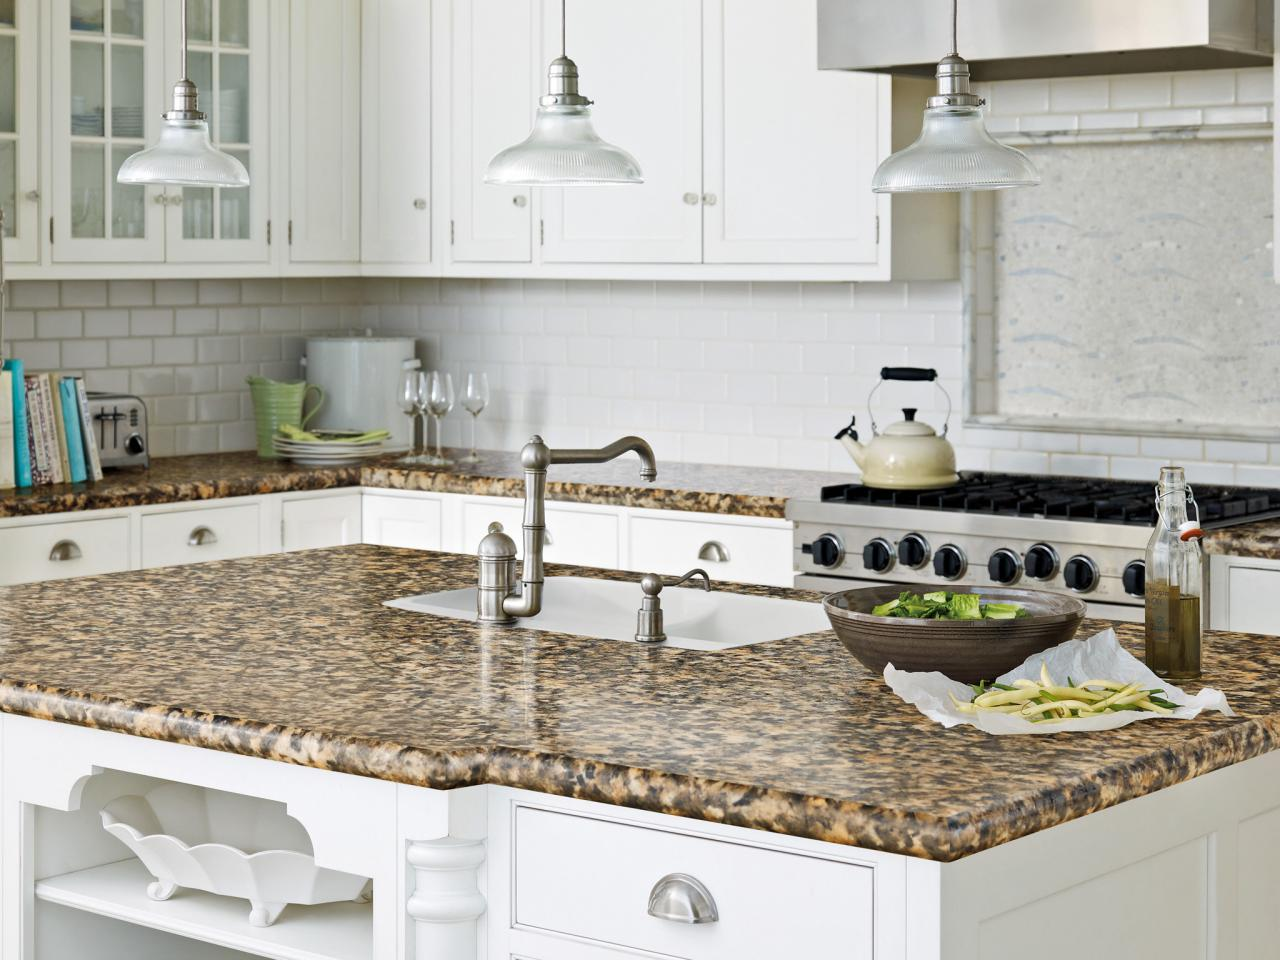 Kitchen Countertops Laminate : laminate kitchen countertops s4x3 countertops continue to define a ...